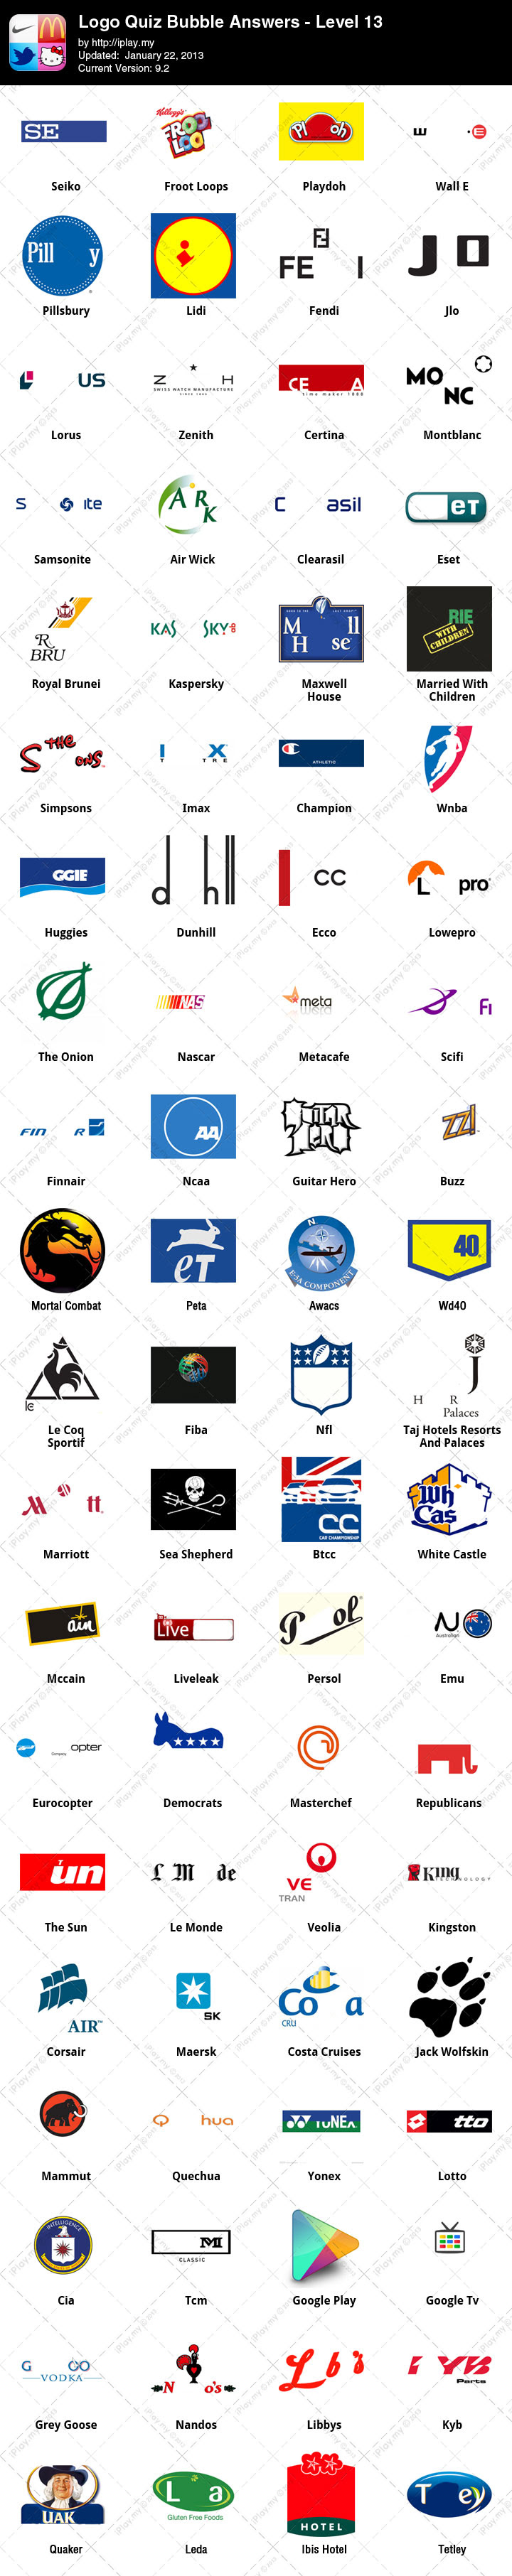 Logo Quiz Answers Level 13 : answers, level, Answers, Level, Iphone